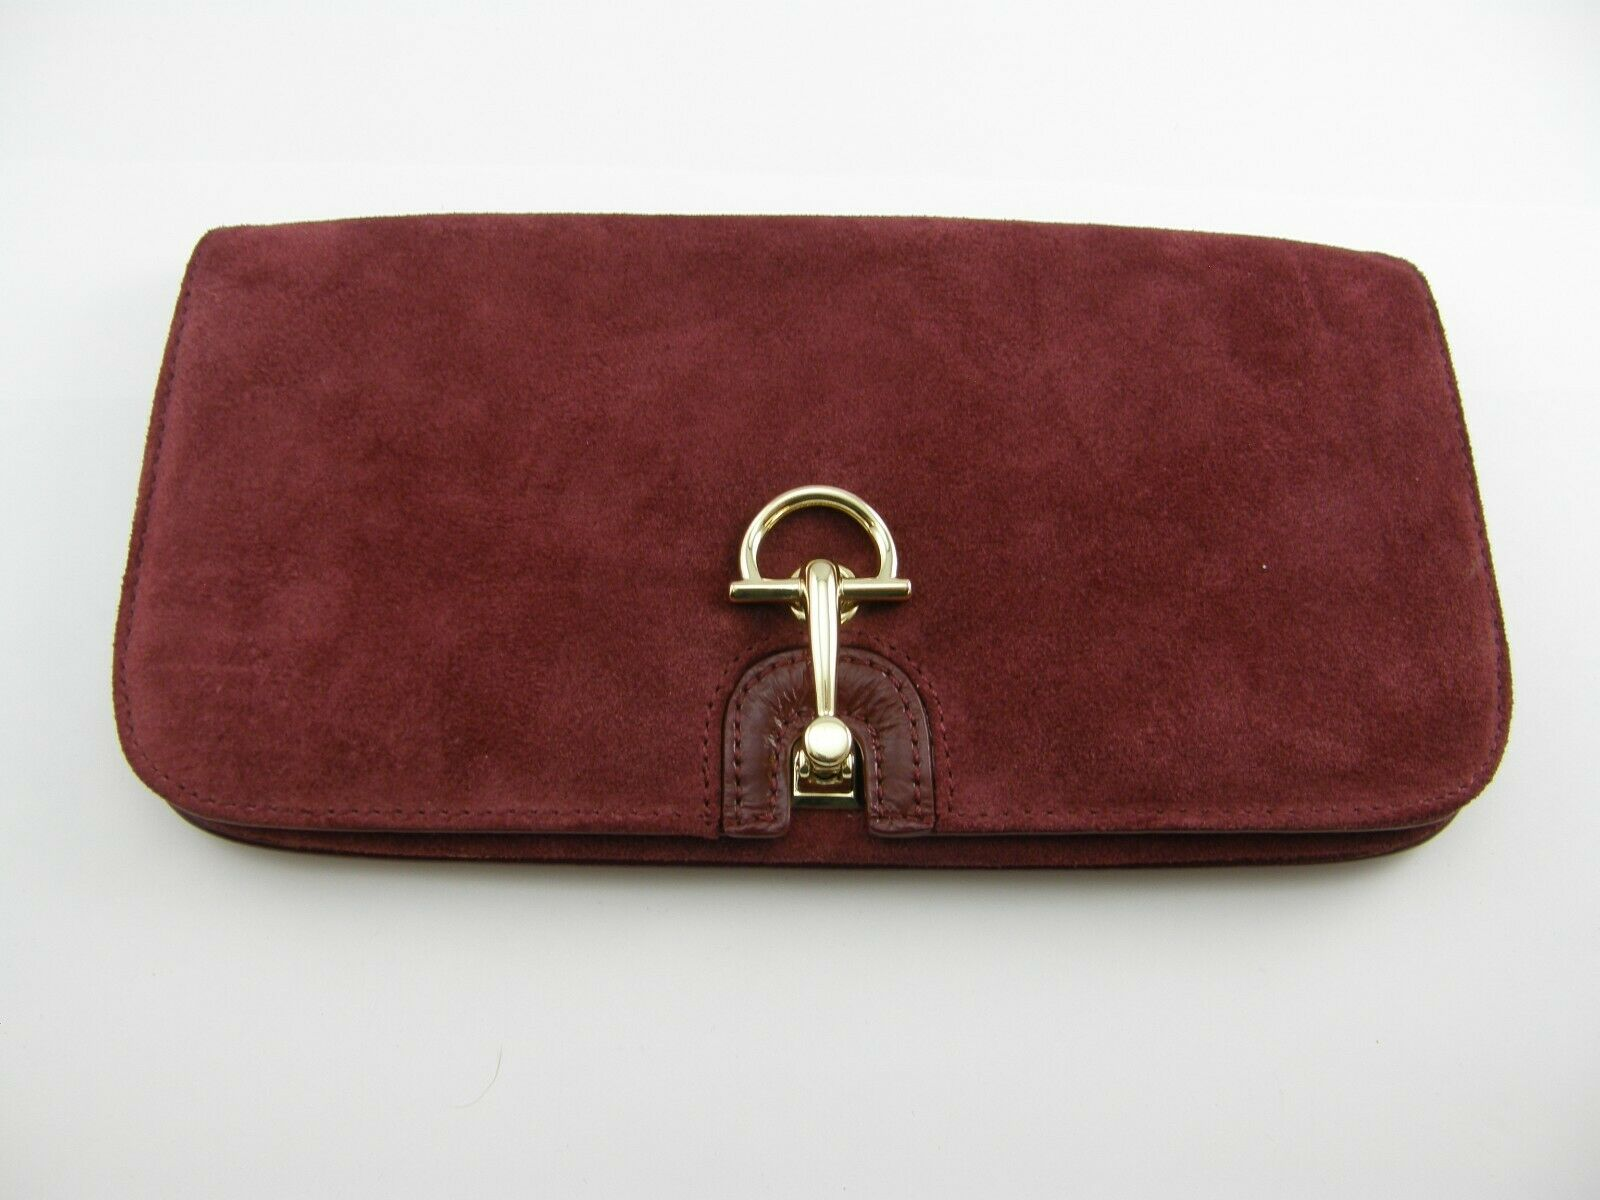 TALBOTS BURGUNDY SUEDE CLUTCH PURSE WITH GOLD TONE MAGNETIC LATCH